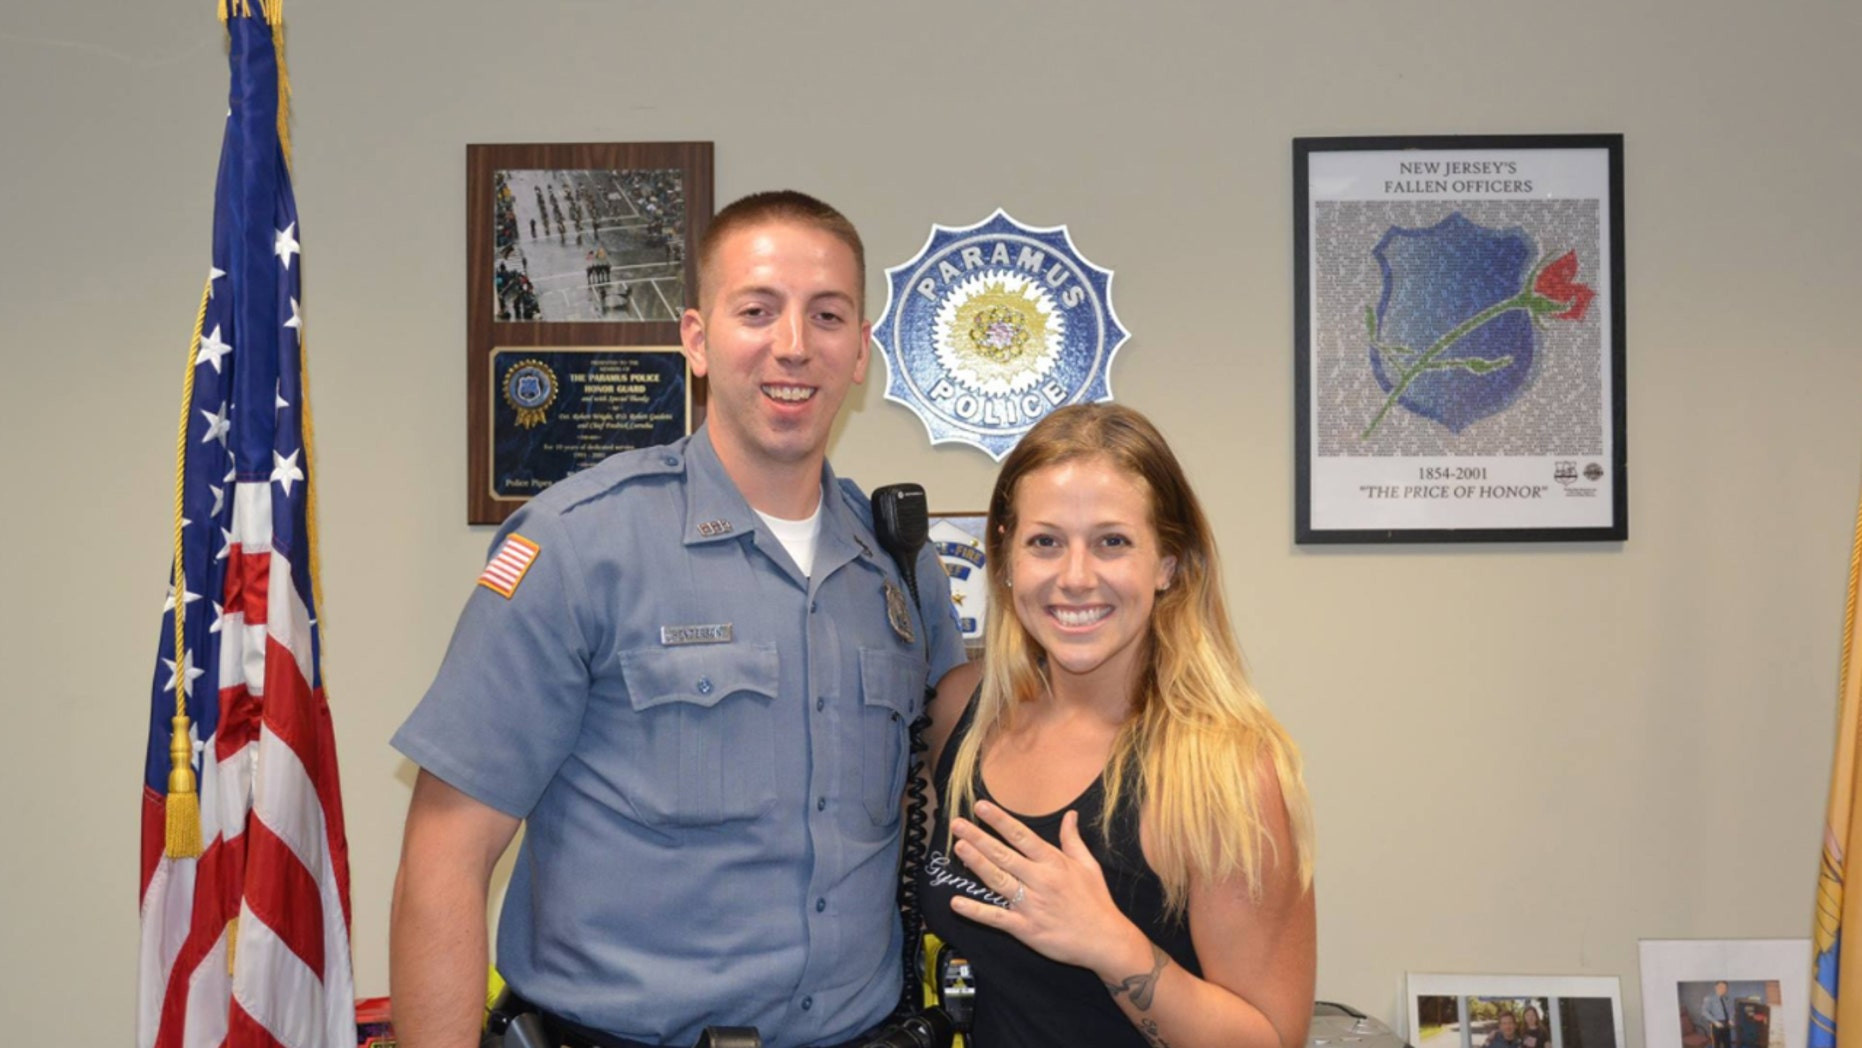 Paramus Officer Jon Henderson helped find Kimberly Garcia's lost diamond engagement ring on the side of a highway.